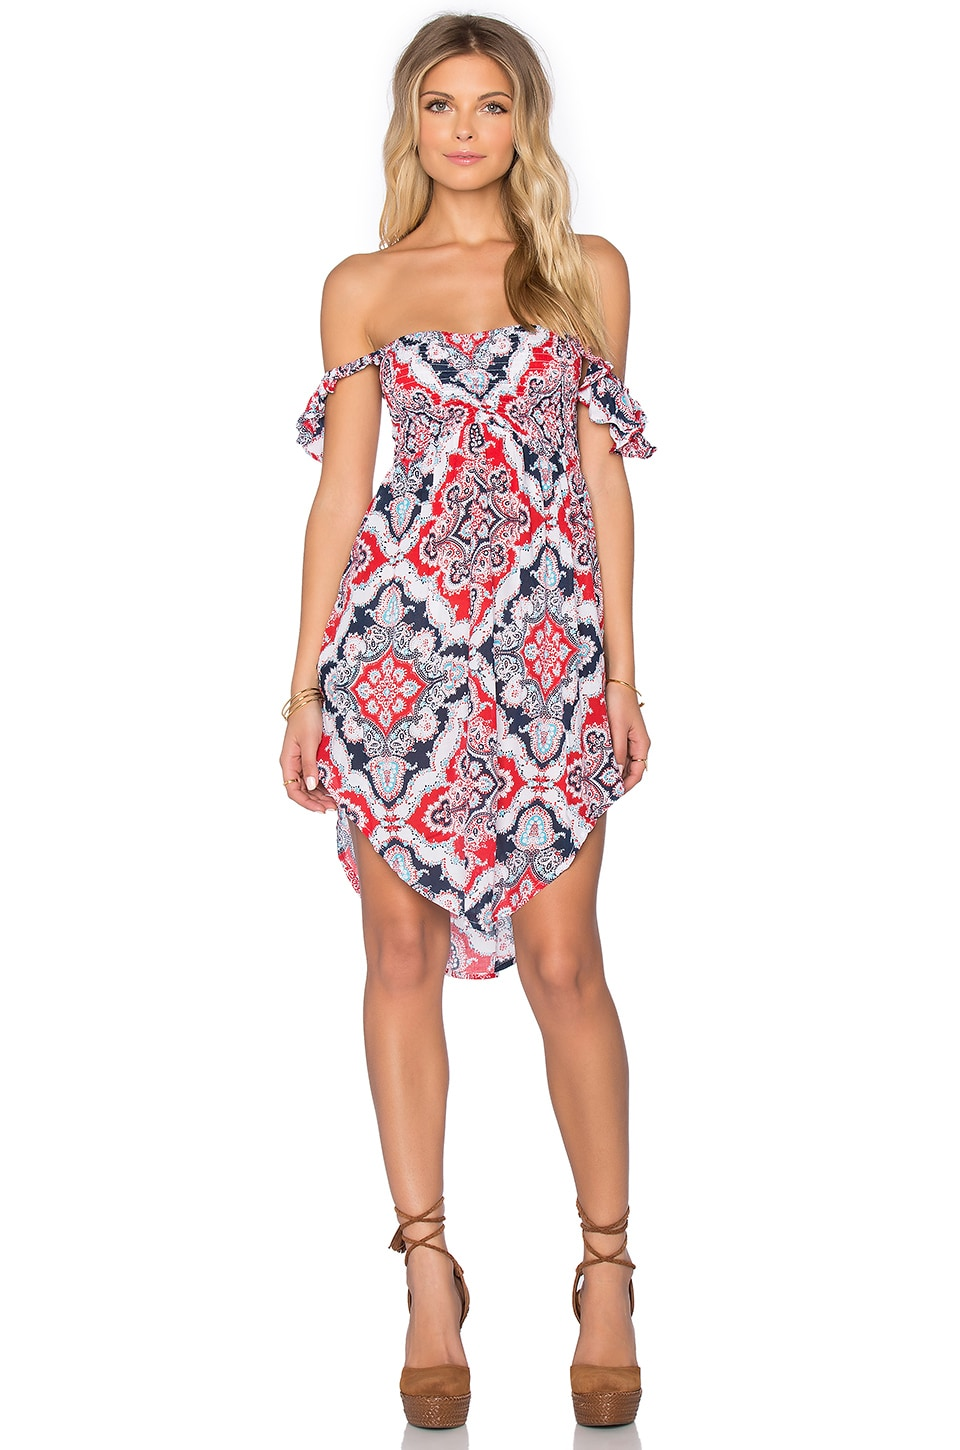 Tiare Hawaii Hollie Off Shoulder Mini Dress in Mosaic Red & Navy Sky